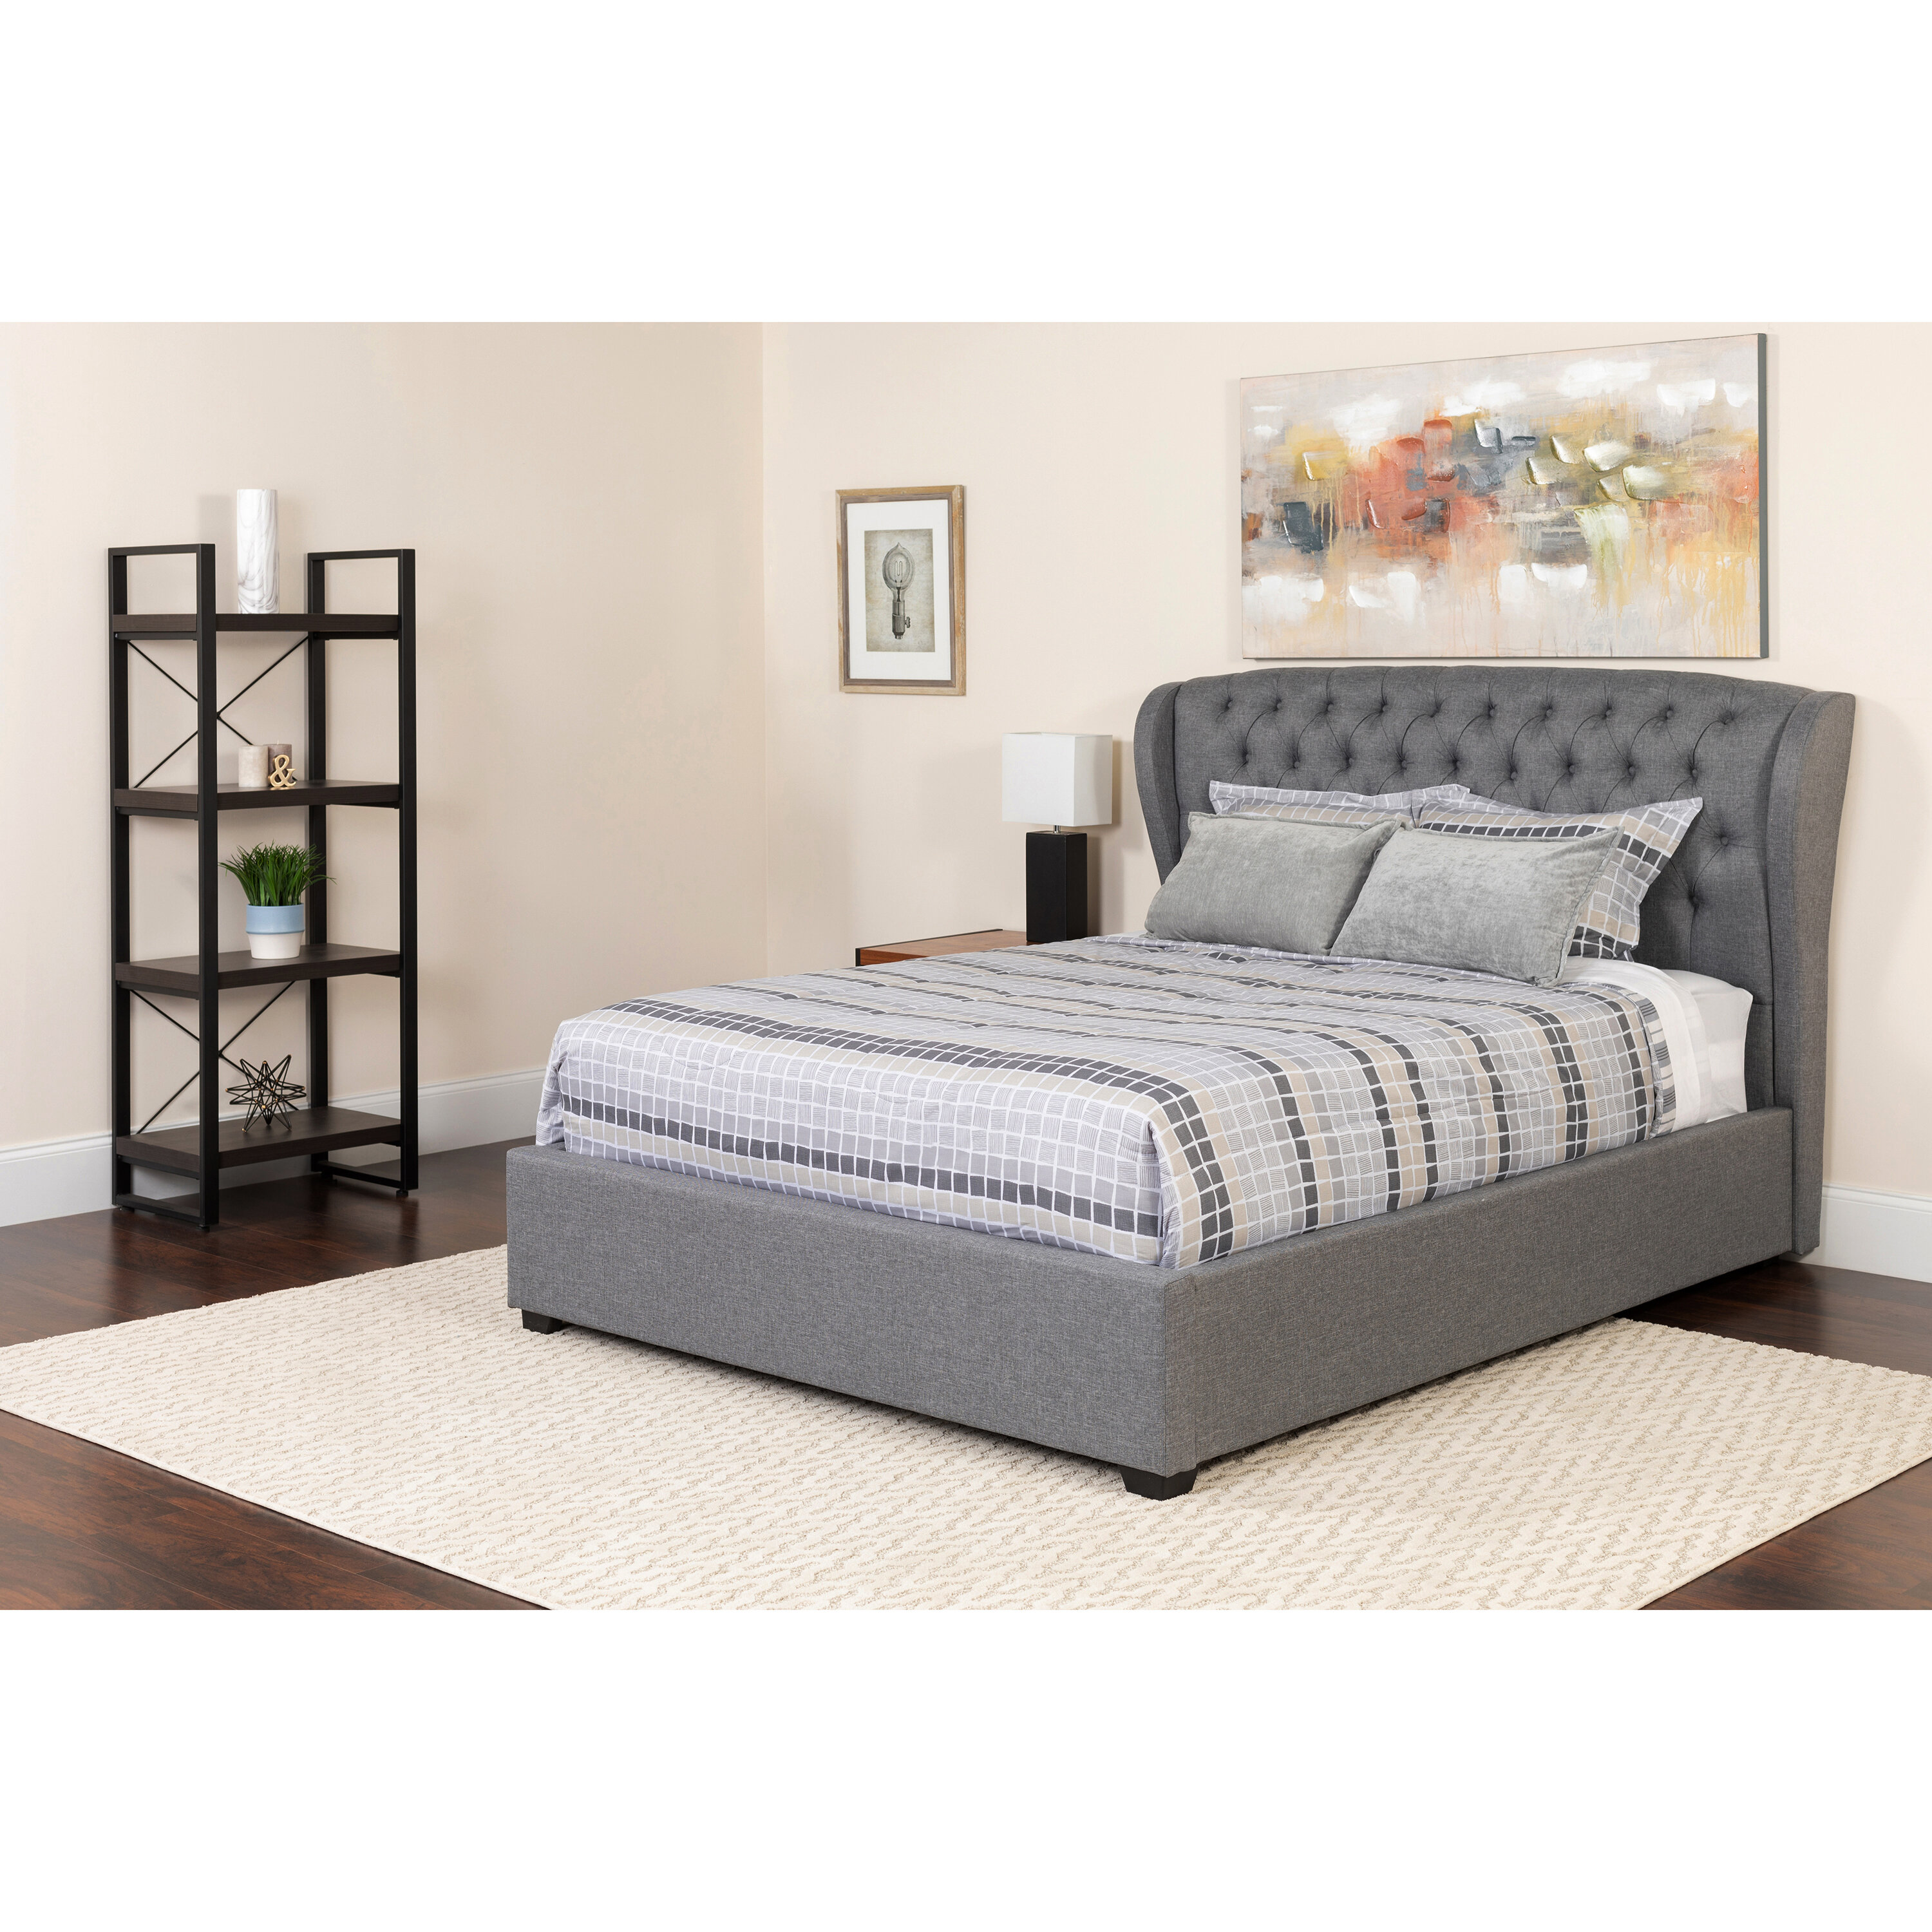 Tremendous Haleigh Tufted Platform Bed With Mattress Caraccident5 Cool Chair Designs And Ideas Caraccident5Info